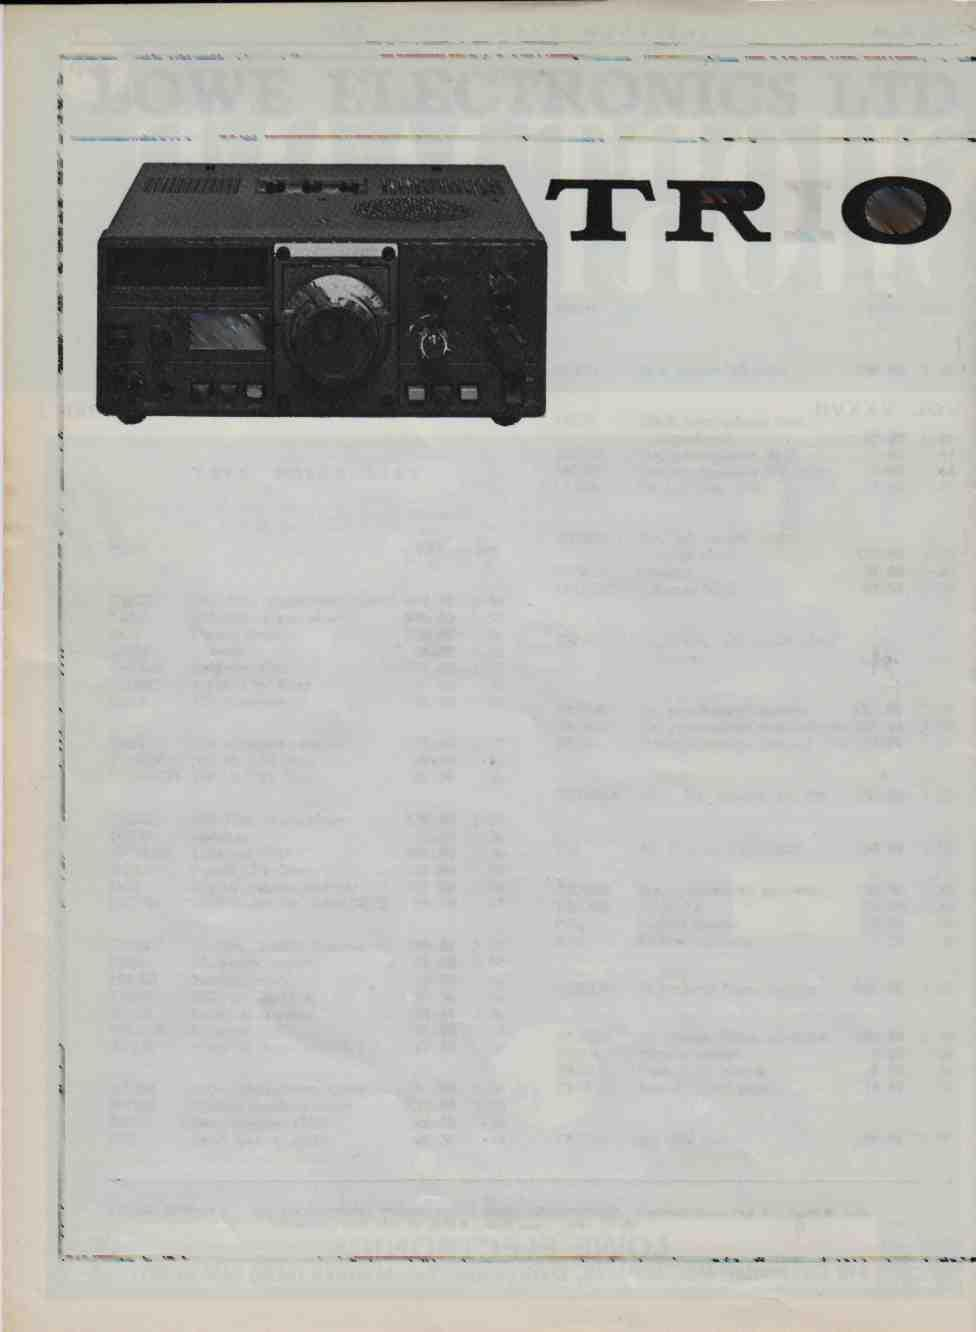 Lowe Electronics Vol Xxxvii M A Y 1979 Number Cavendish Rd 170 Wiring Diagram Ii The Short Wave Magazine May Ltd C St